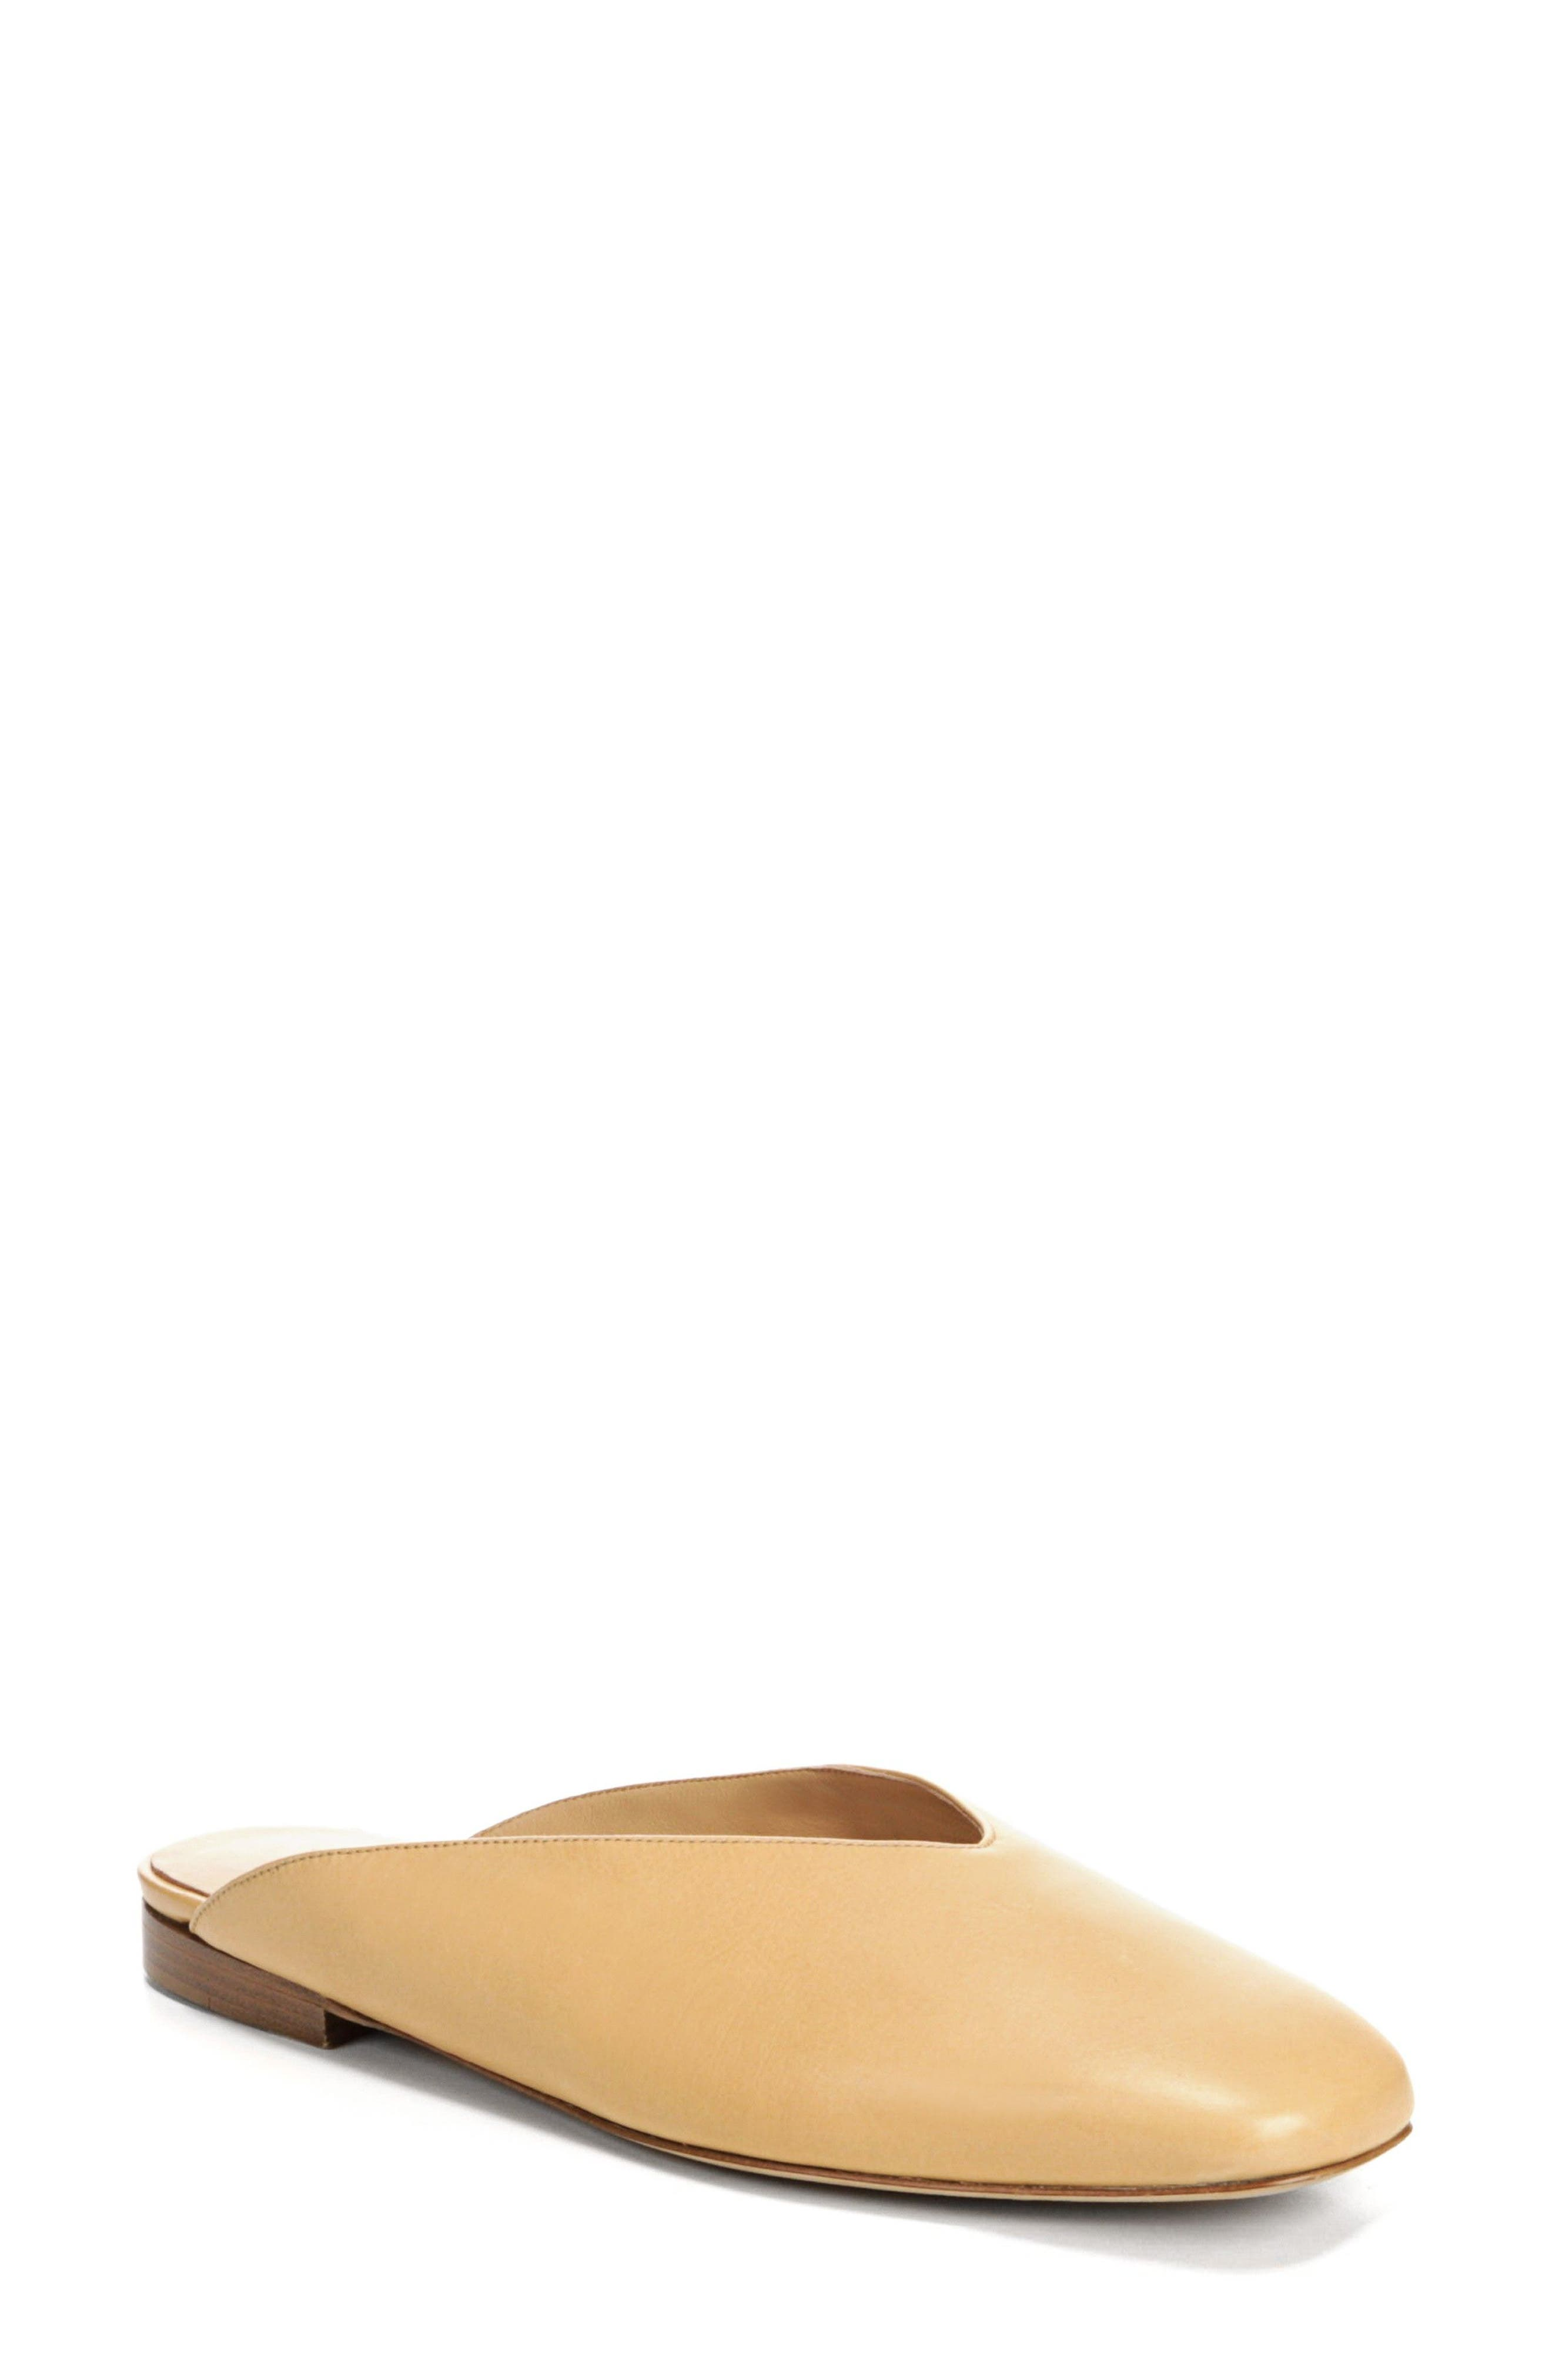 Levins V-Cut Mule,                         Main,                         color, Sand